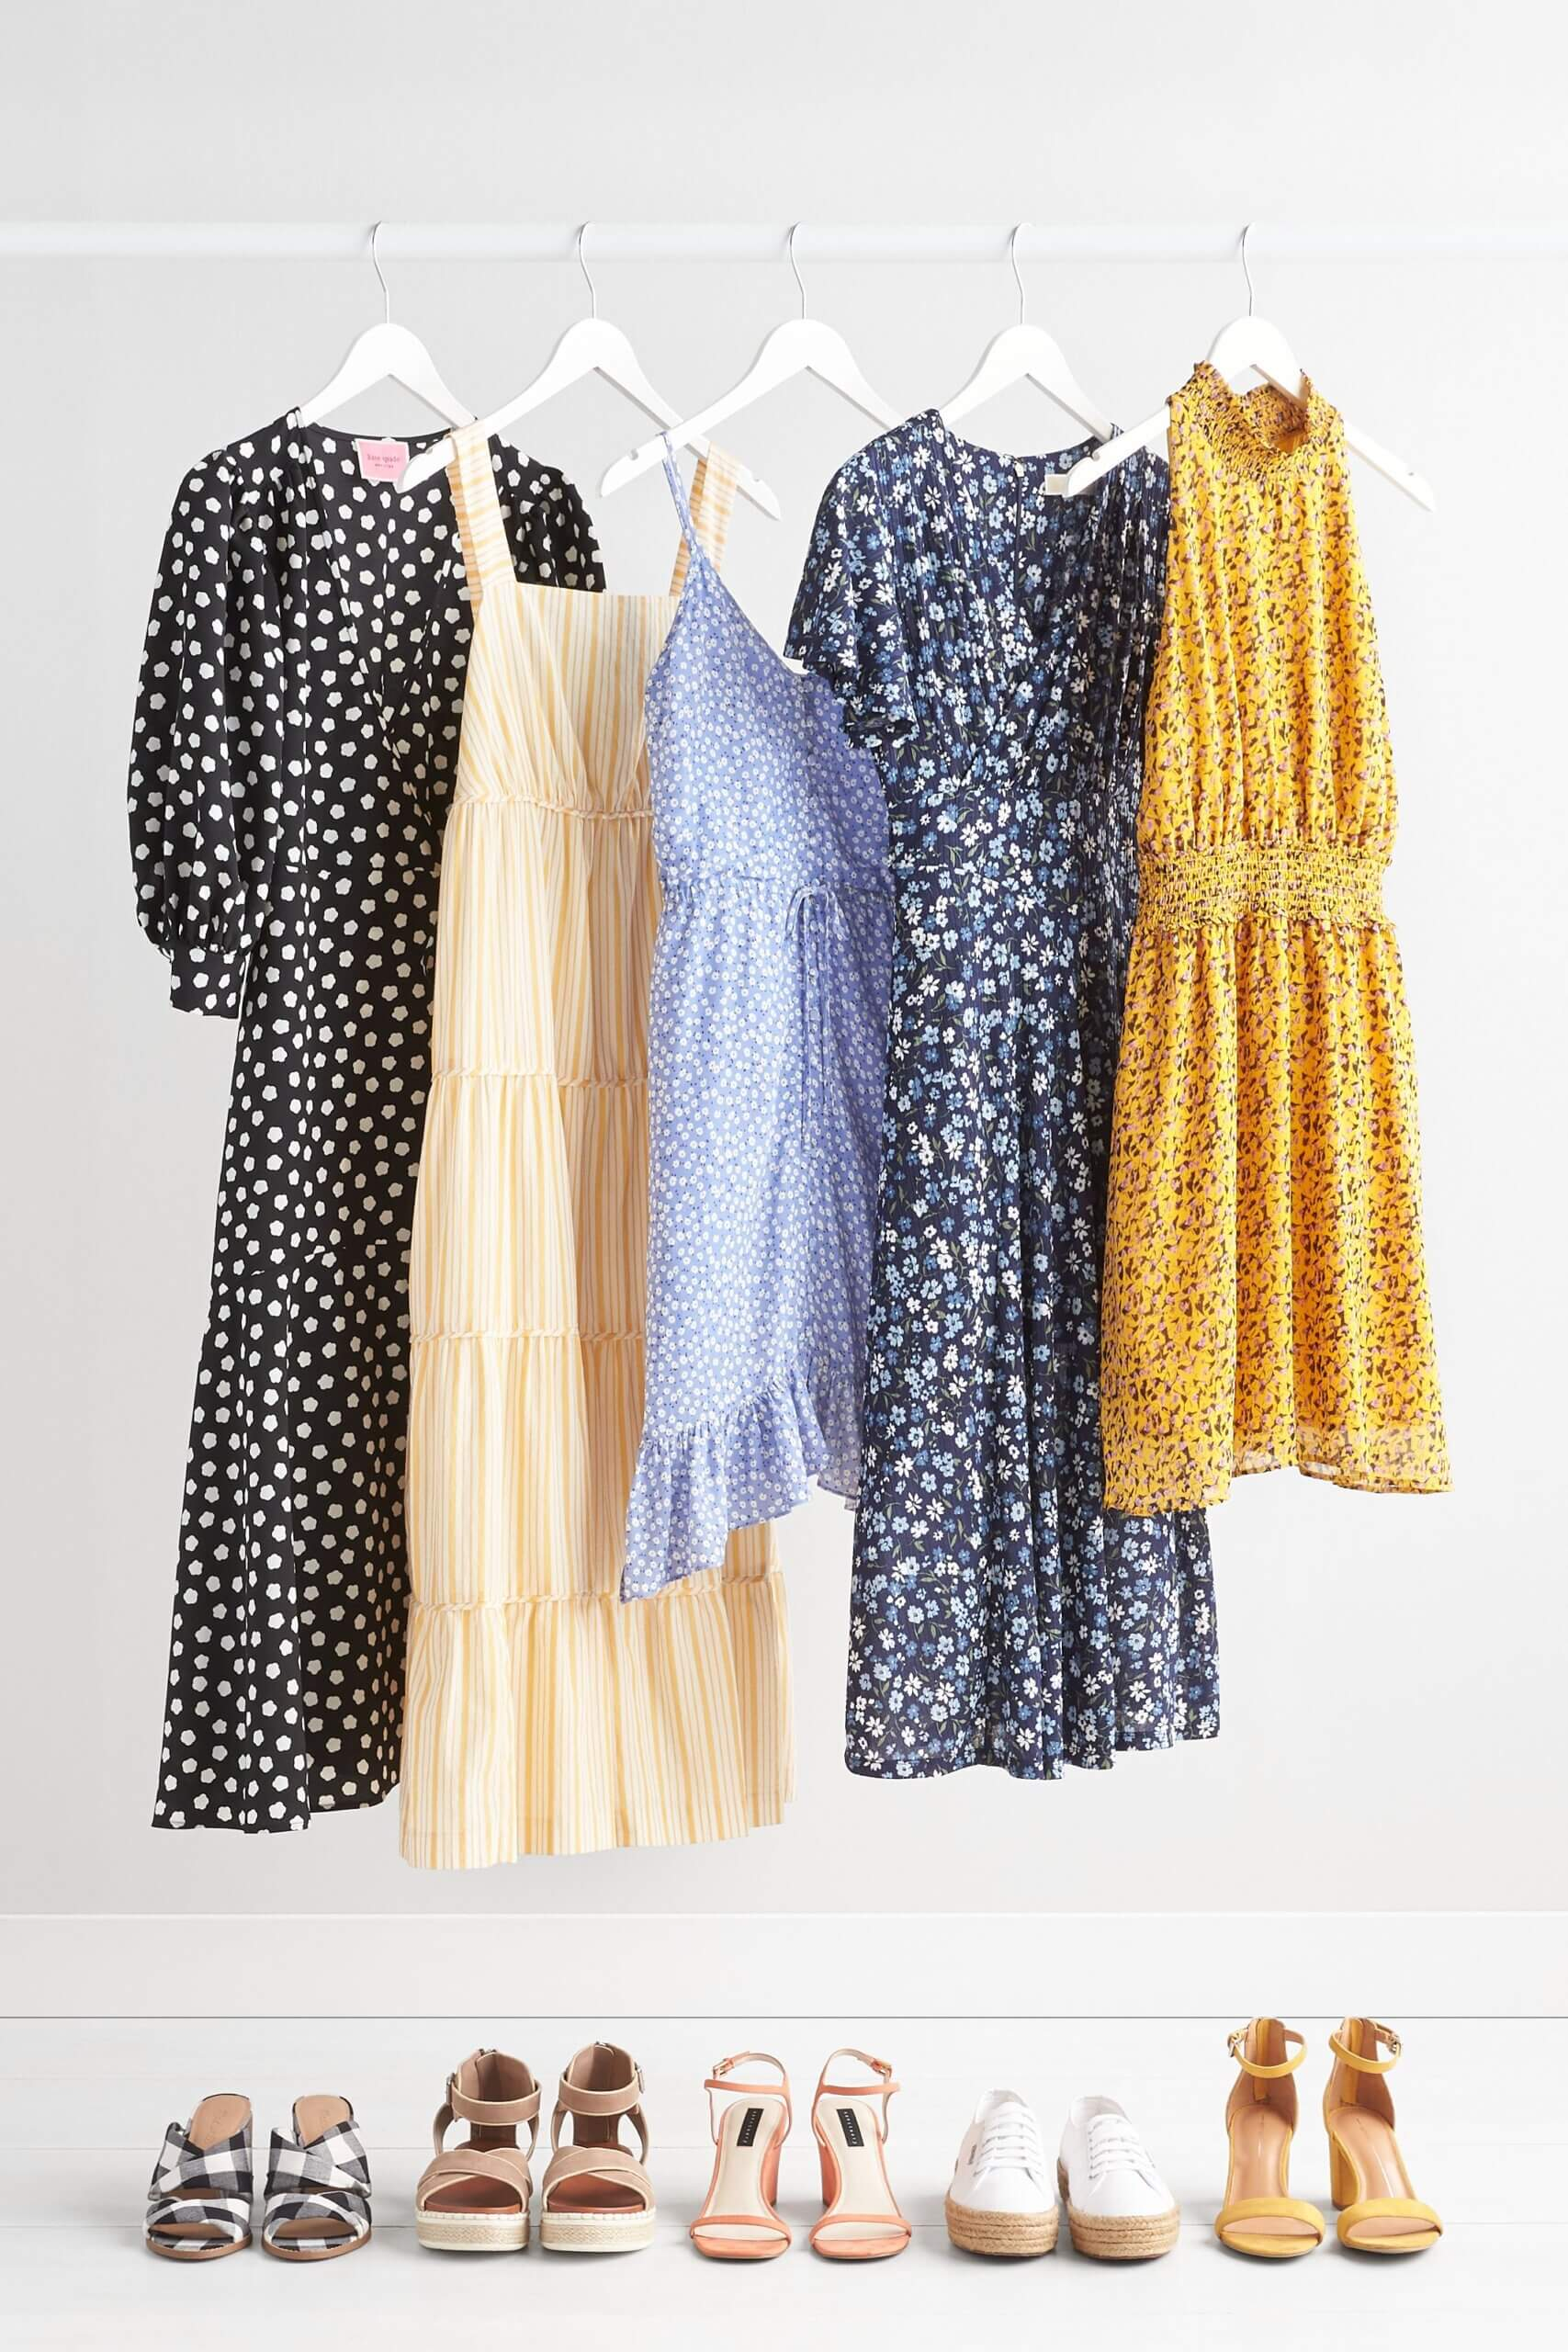 Stitch Fix Women's Easter outfits featuring black dot midi dress, yellow striped tiered dress, ditsy floral dress, microfloral mini dresses and five pairs of shoes.